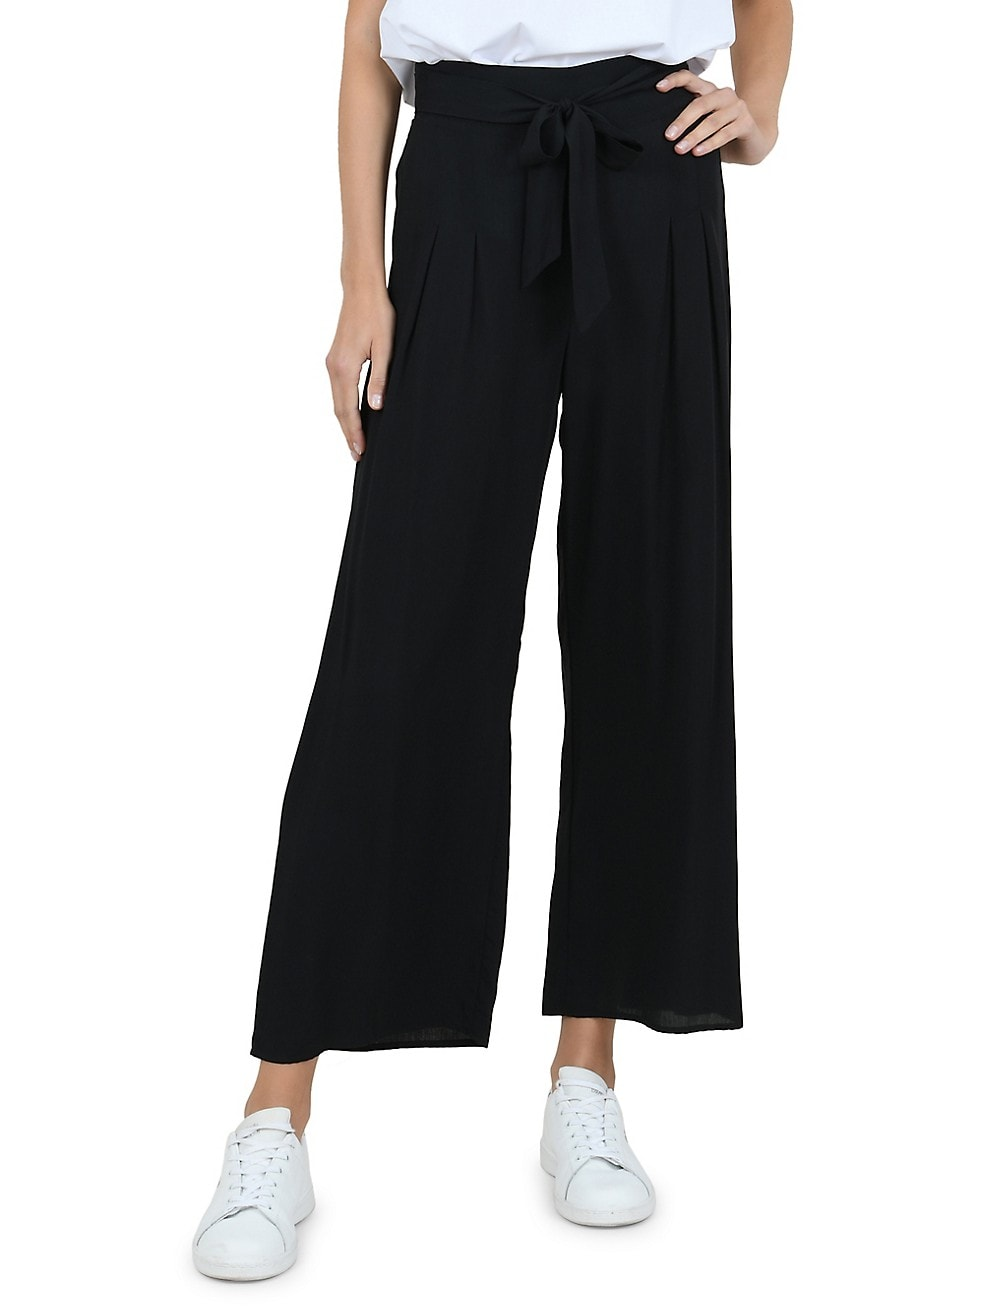 Lili Sidonio Self-Tie Wide-Leg Pants